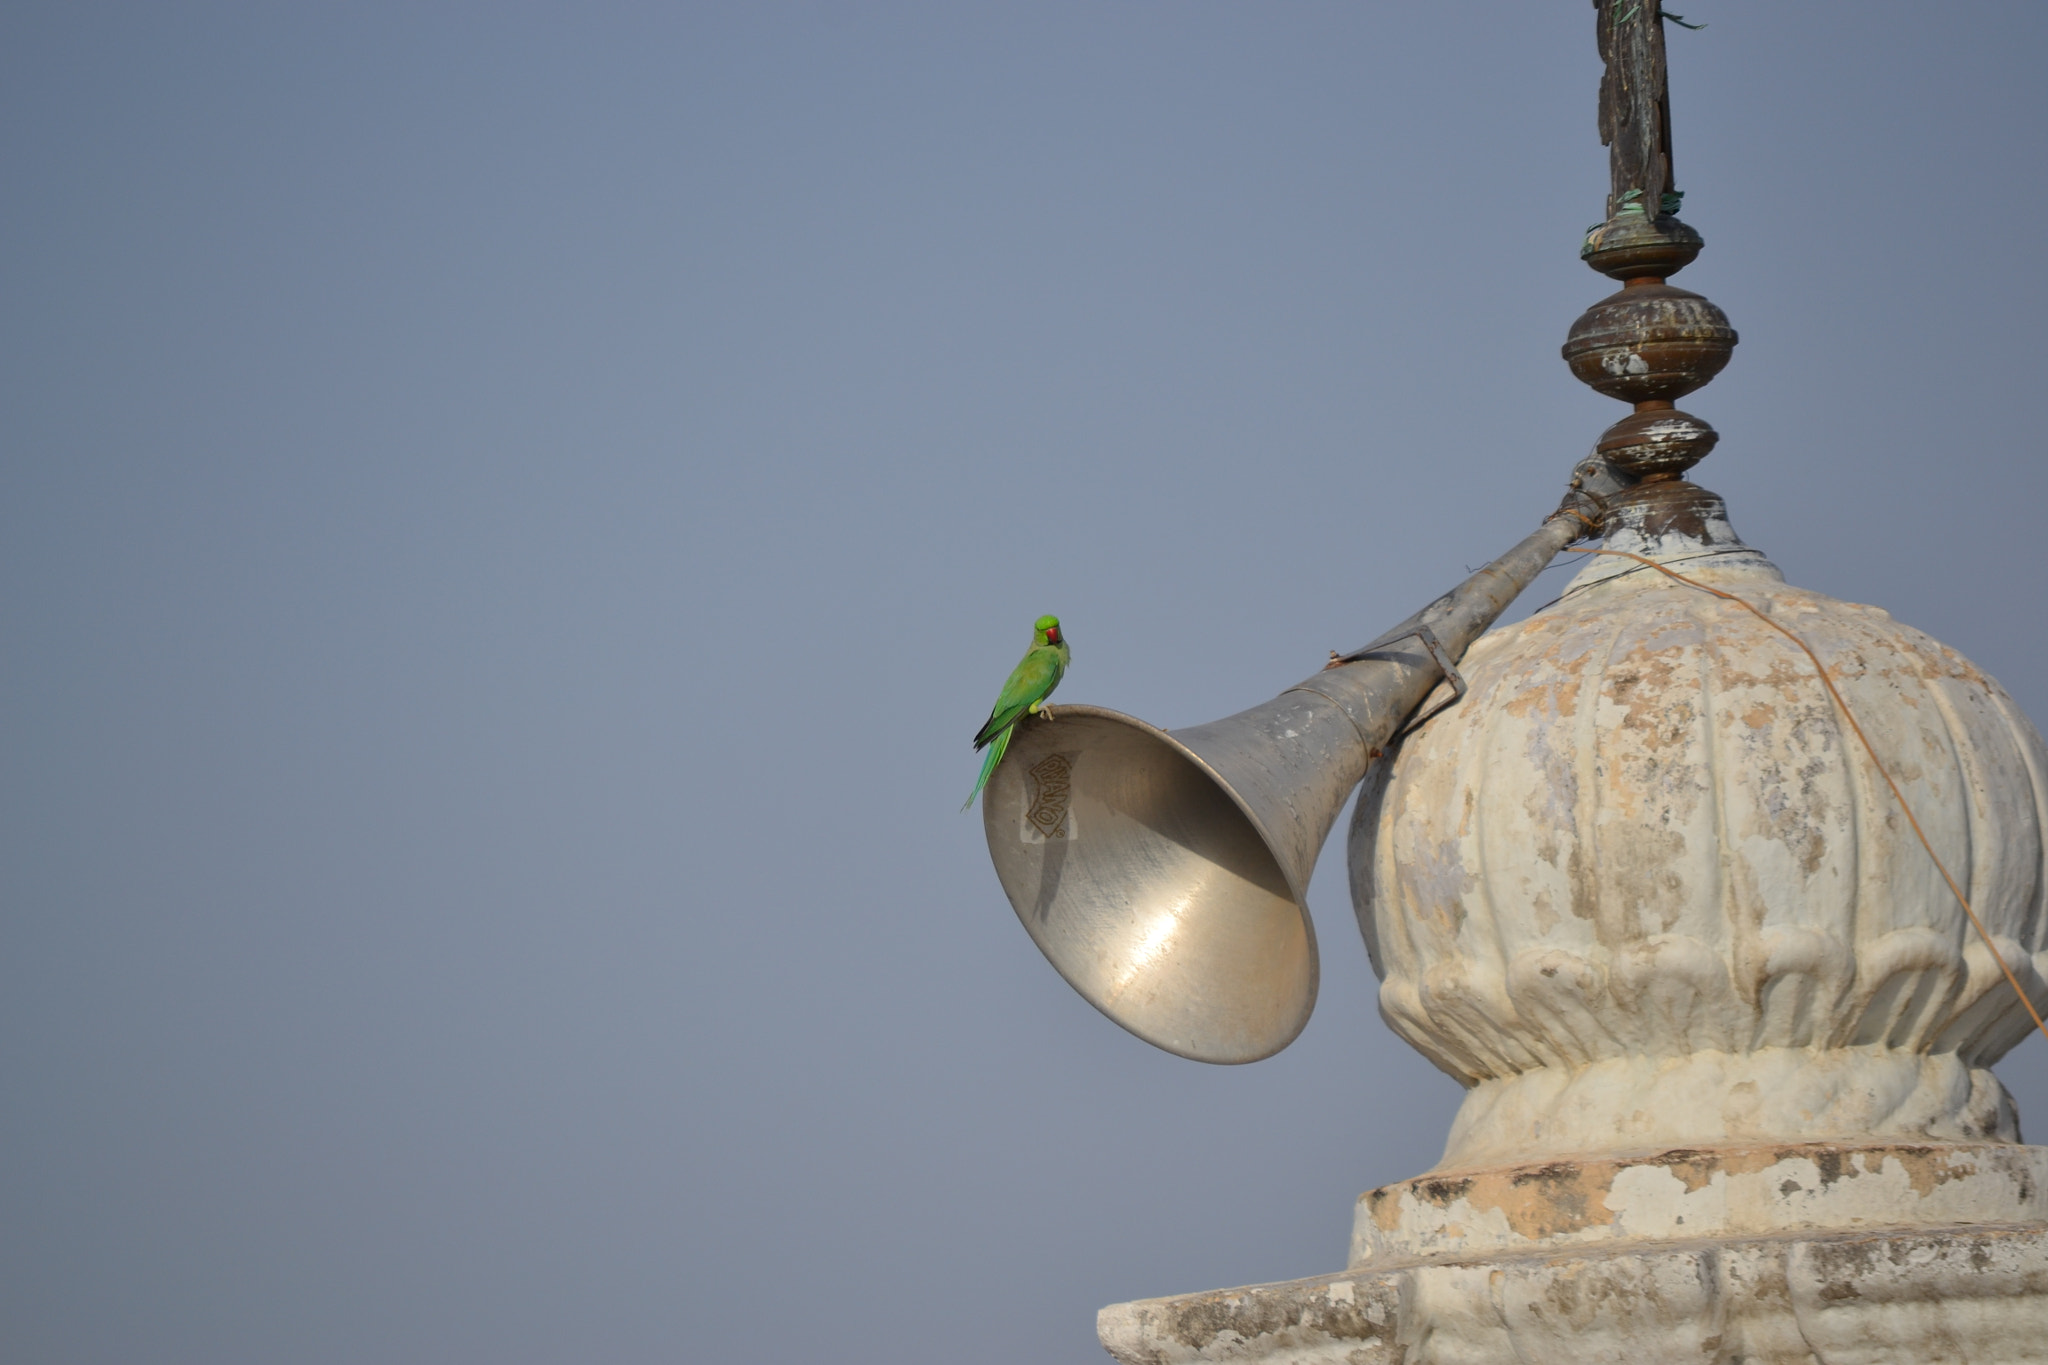 Photograph Parakeet Announcing the arrival of Monsoon in India by S.T.Kiran Kumar on 500px